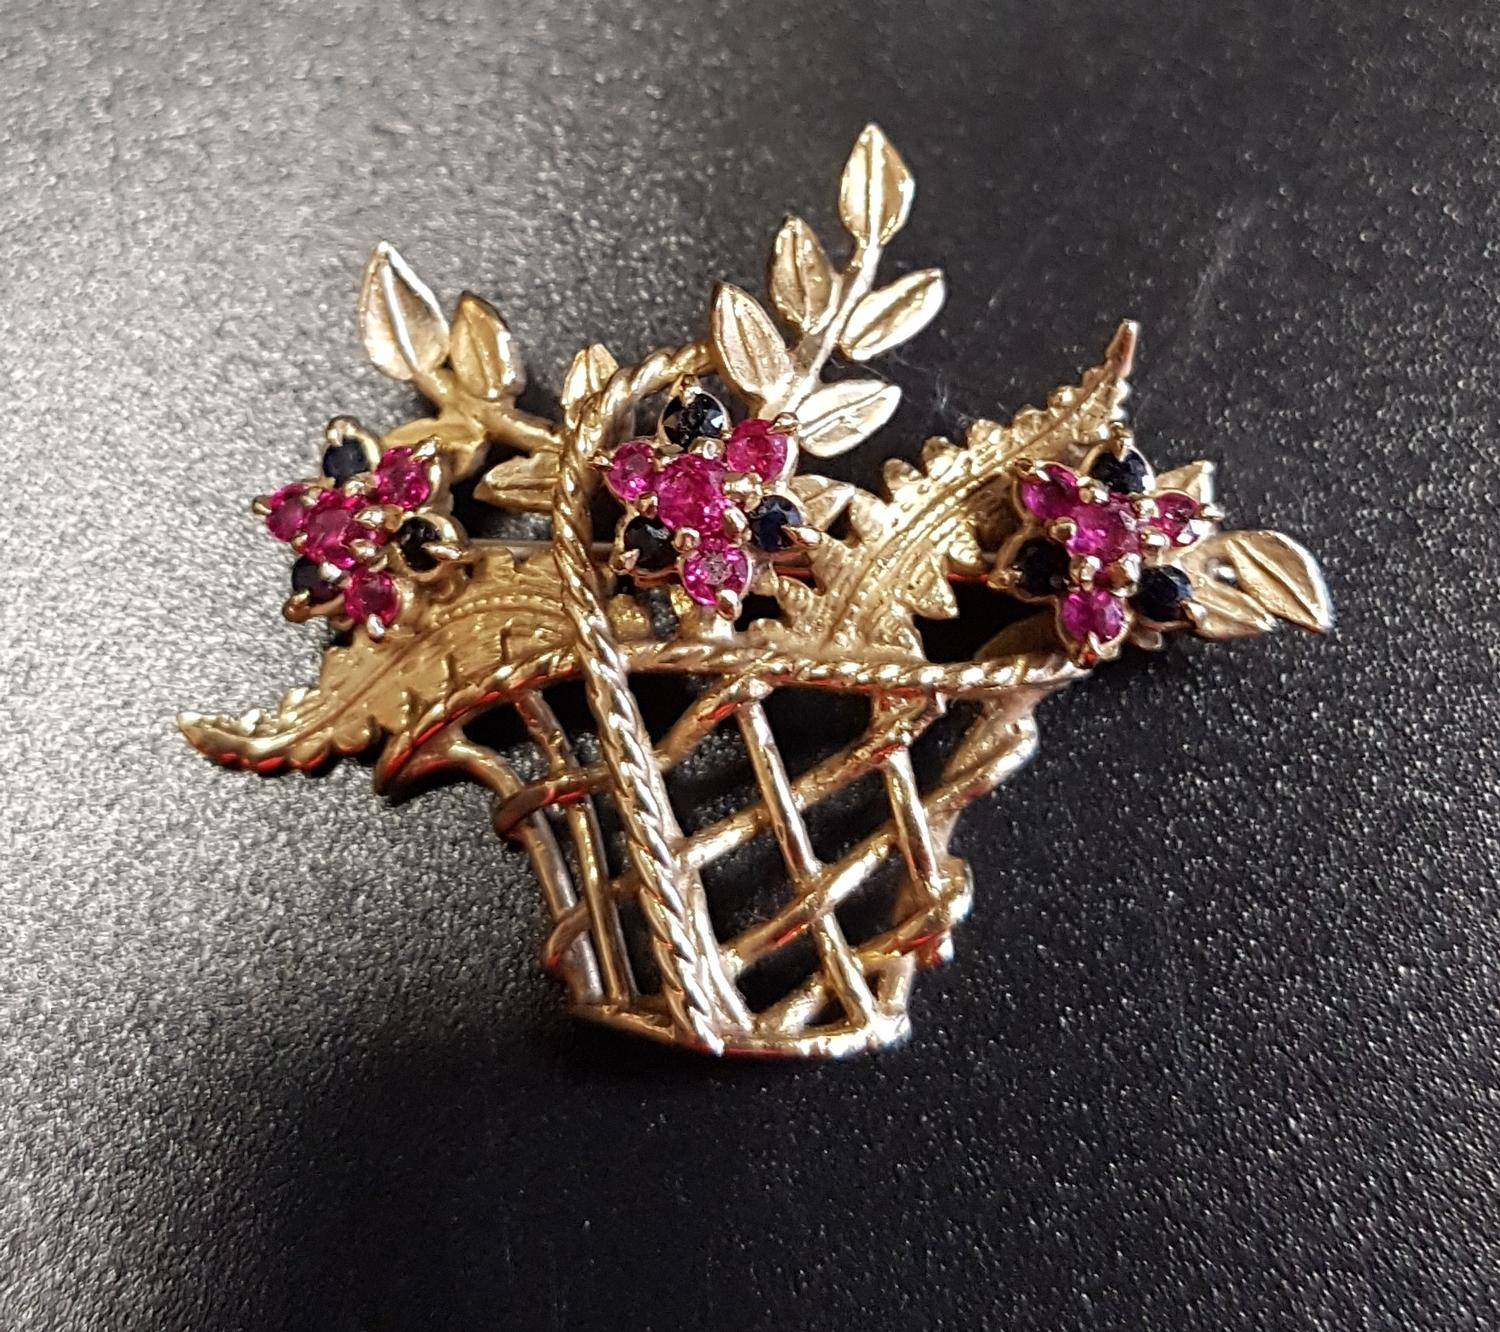 Lot 42 - RUBY AND SAPPHIRE NINE CARAT GOLD BROOCH in the form of a basket of flowers, with three ruby and